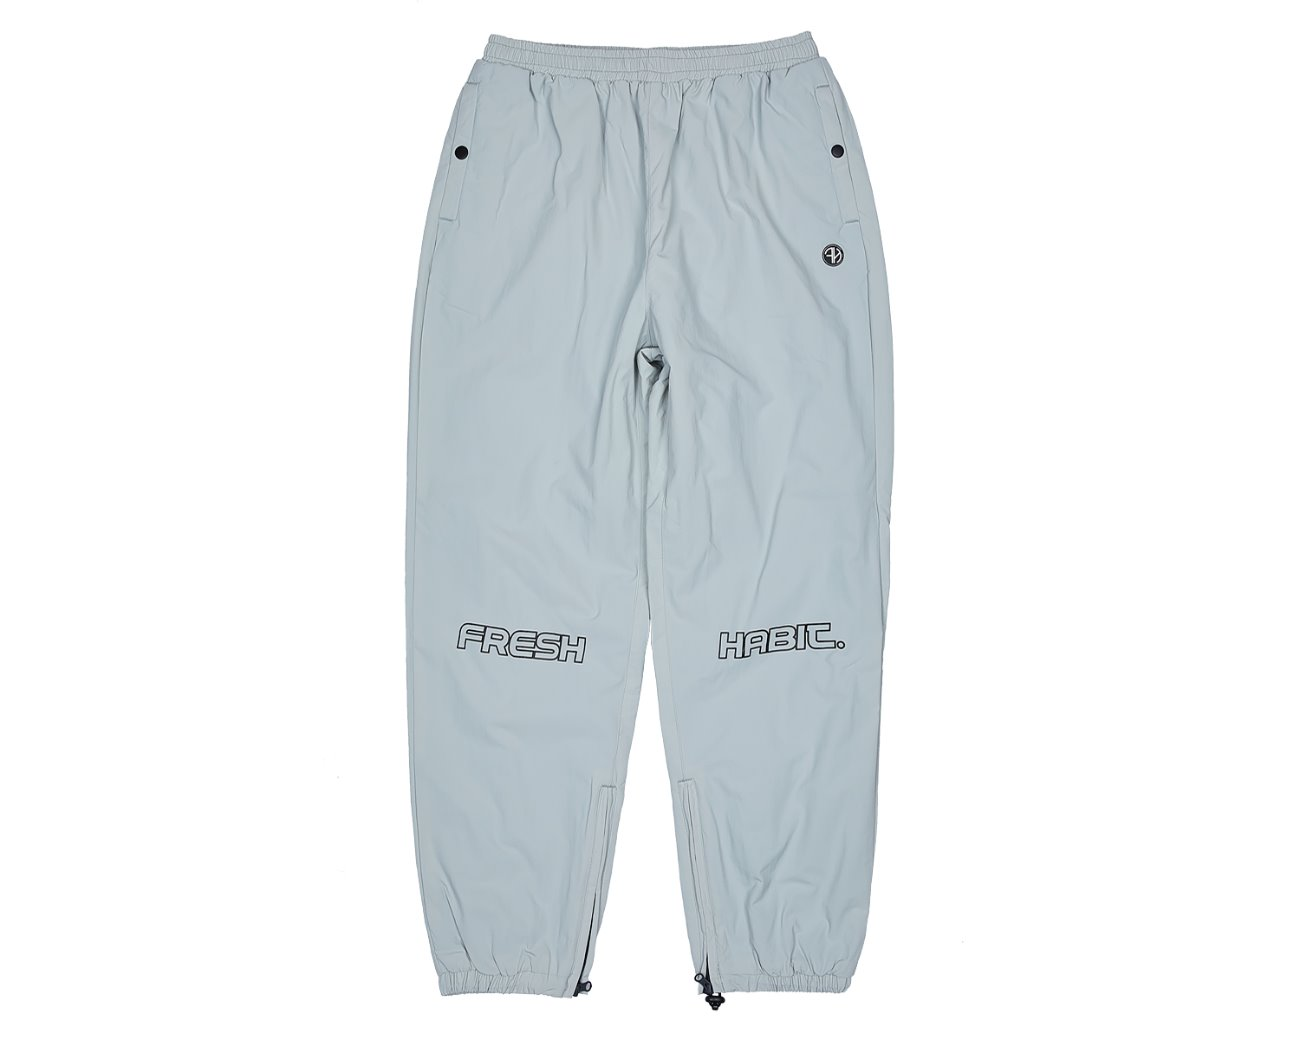 FH TRACK PANTS WHITEGRAY / GAFH